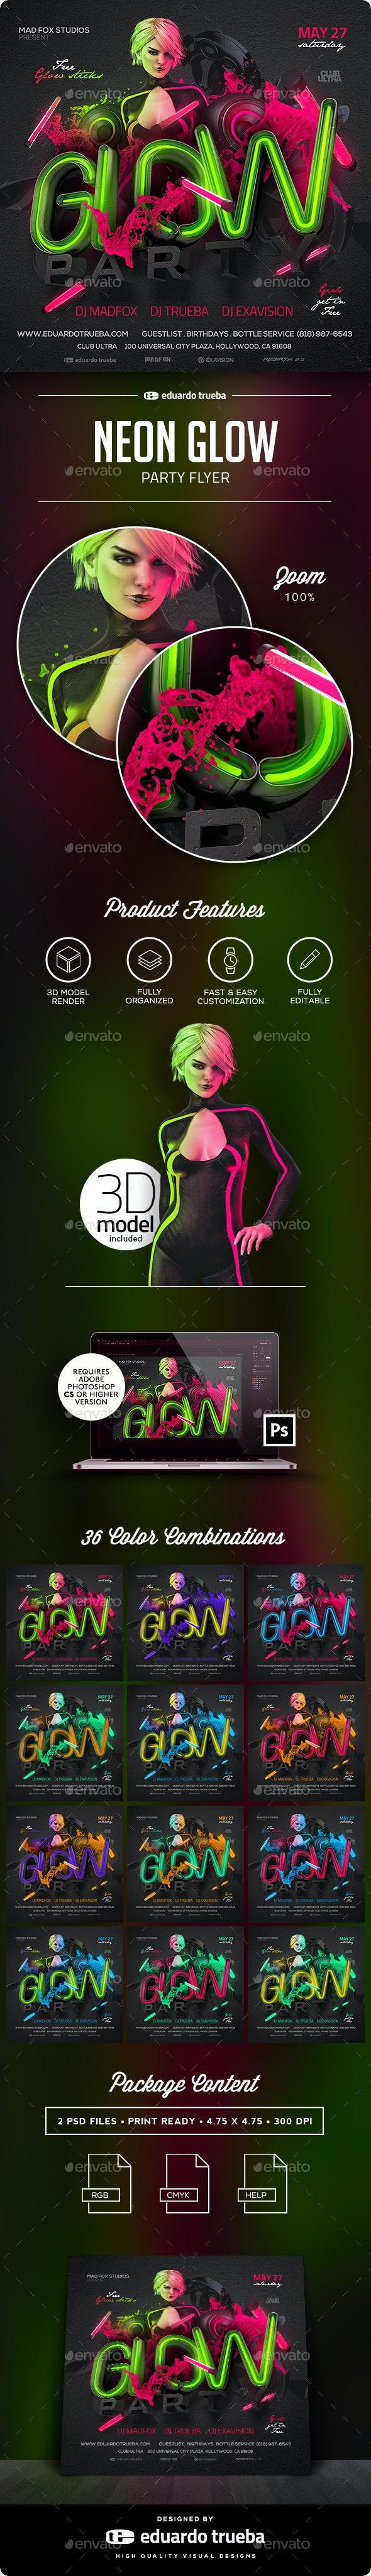 Neon Glow Party Flyer - Clubs & Parties Events